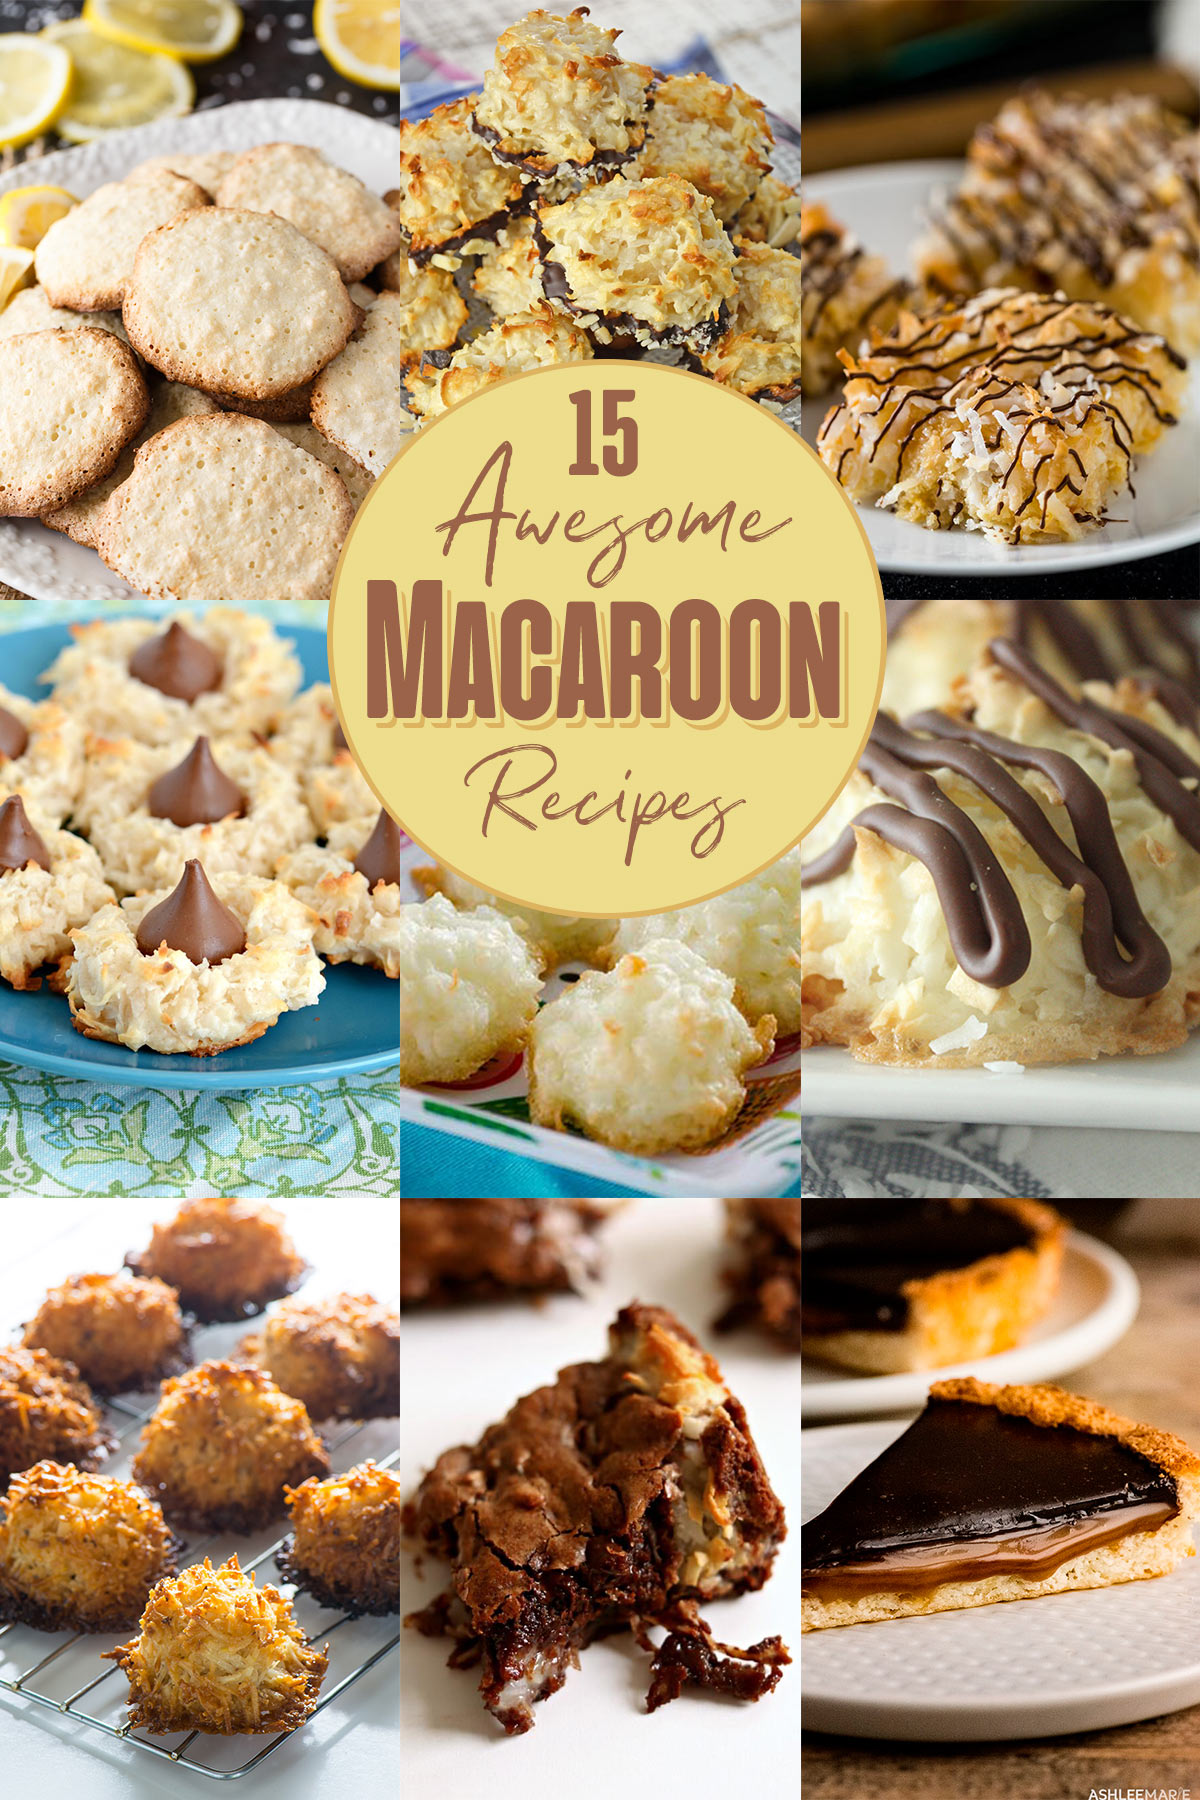 15 Awesome Macaroon Recipes | realmomkitchen.com #nationalmacaroonday